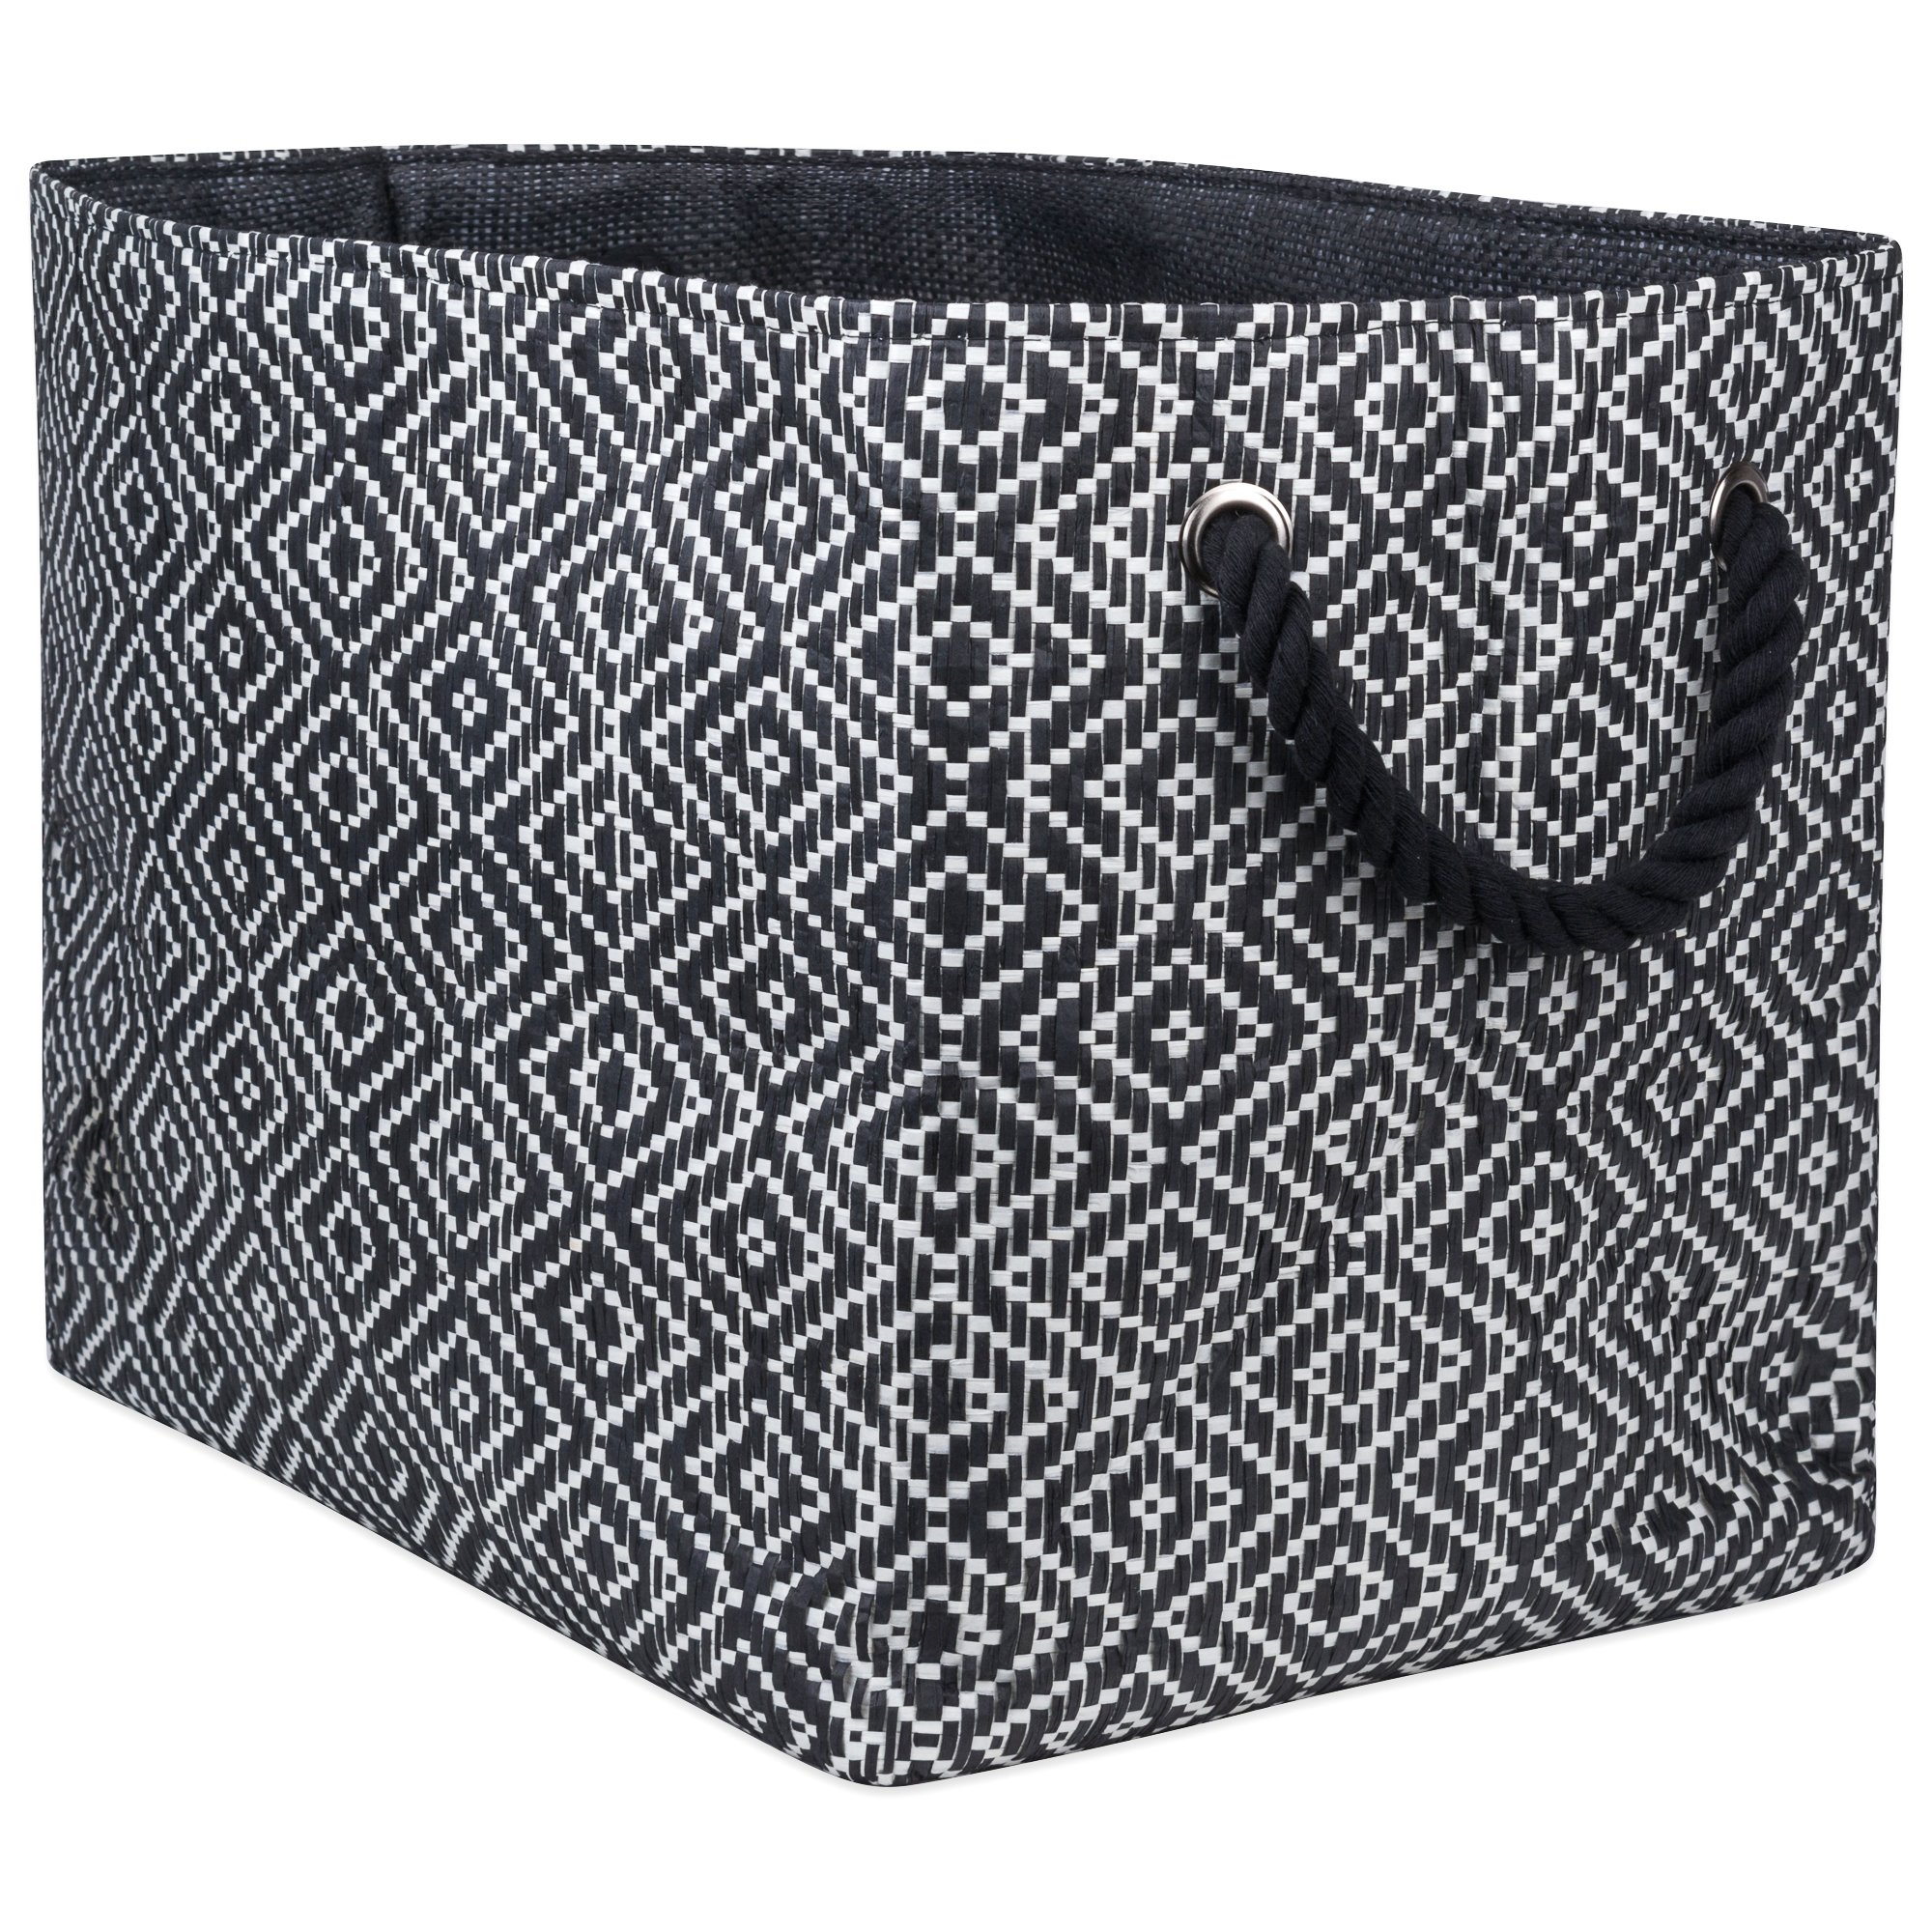 """DII Oversize Woven Paper Storage Basket or Bin, Collapsible & Convenient Home Organization Solution for Office, Bedroom, Closet, Toys, Laundry(Large - 17x12x12""""), Black & White Diamond Basketweave by DII (Image #1)"""